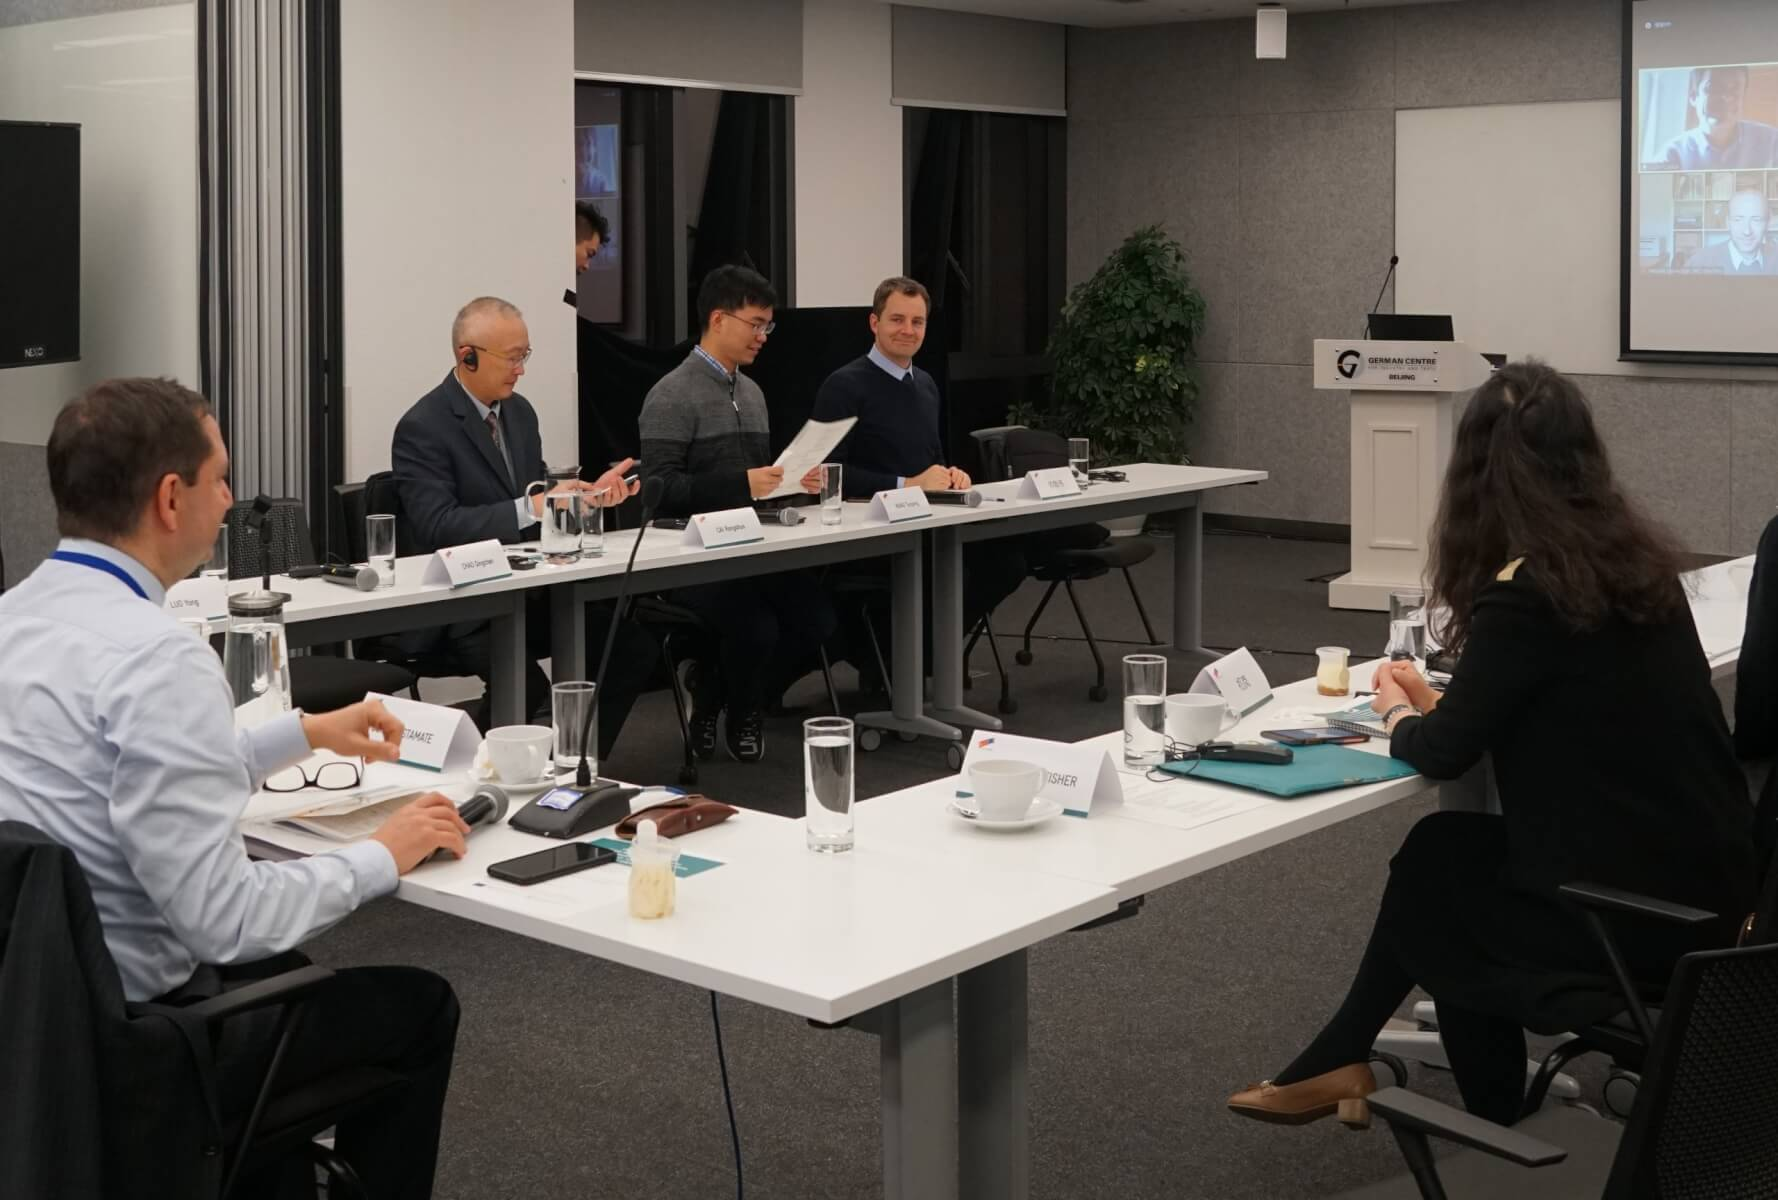 Chinese and German experts discuss at a hybrid conference